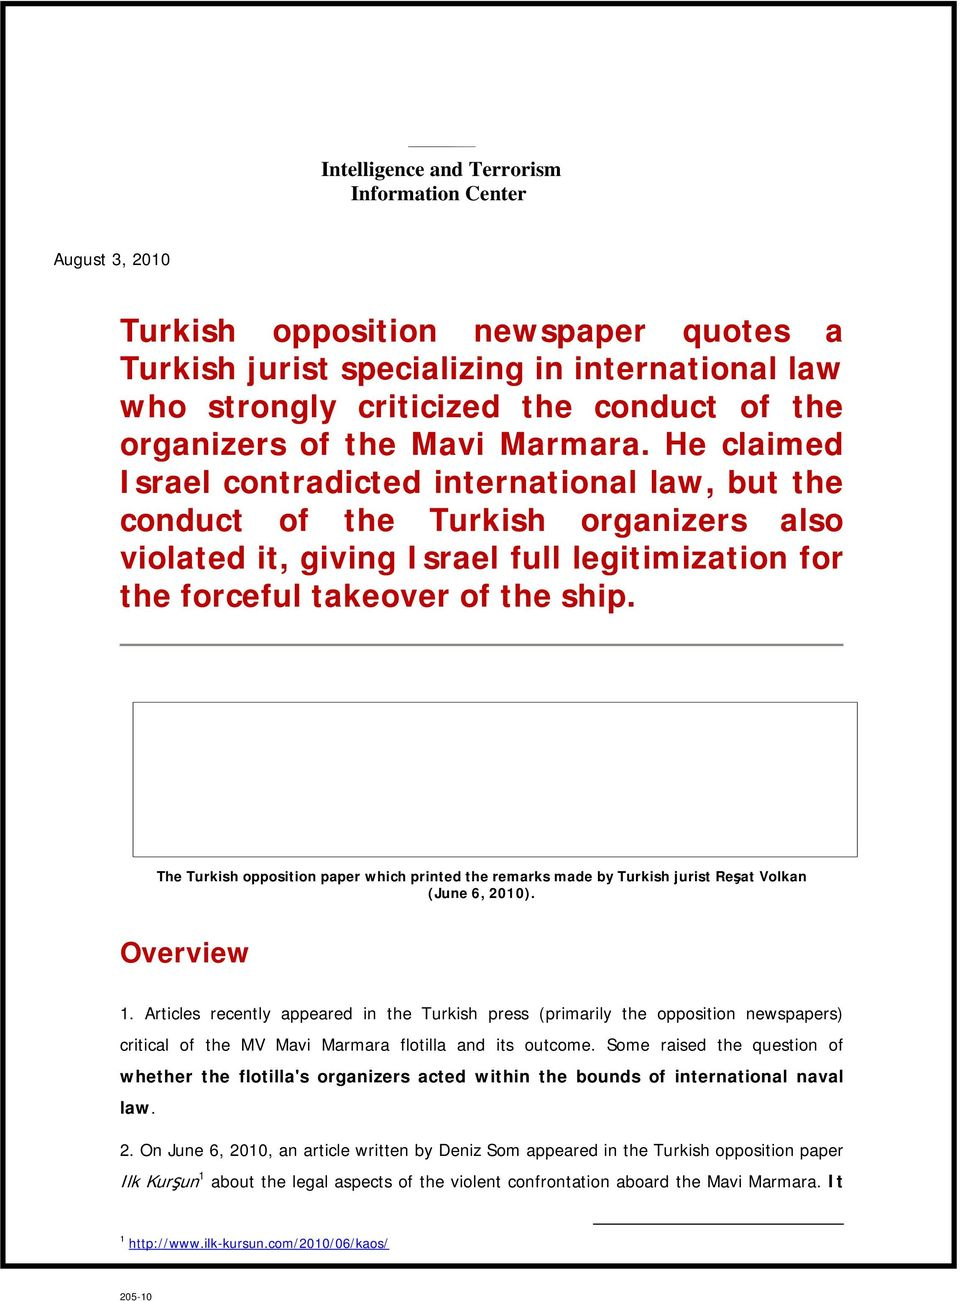 He claimed Israel contradicted international law, but the conduct of the Turkish organizers also violated it, giving Israel full legitimization for the forceful takeover of the ship.